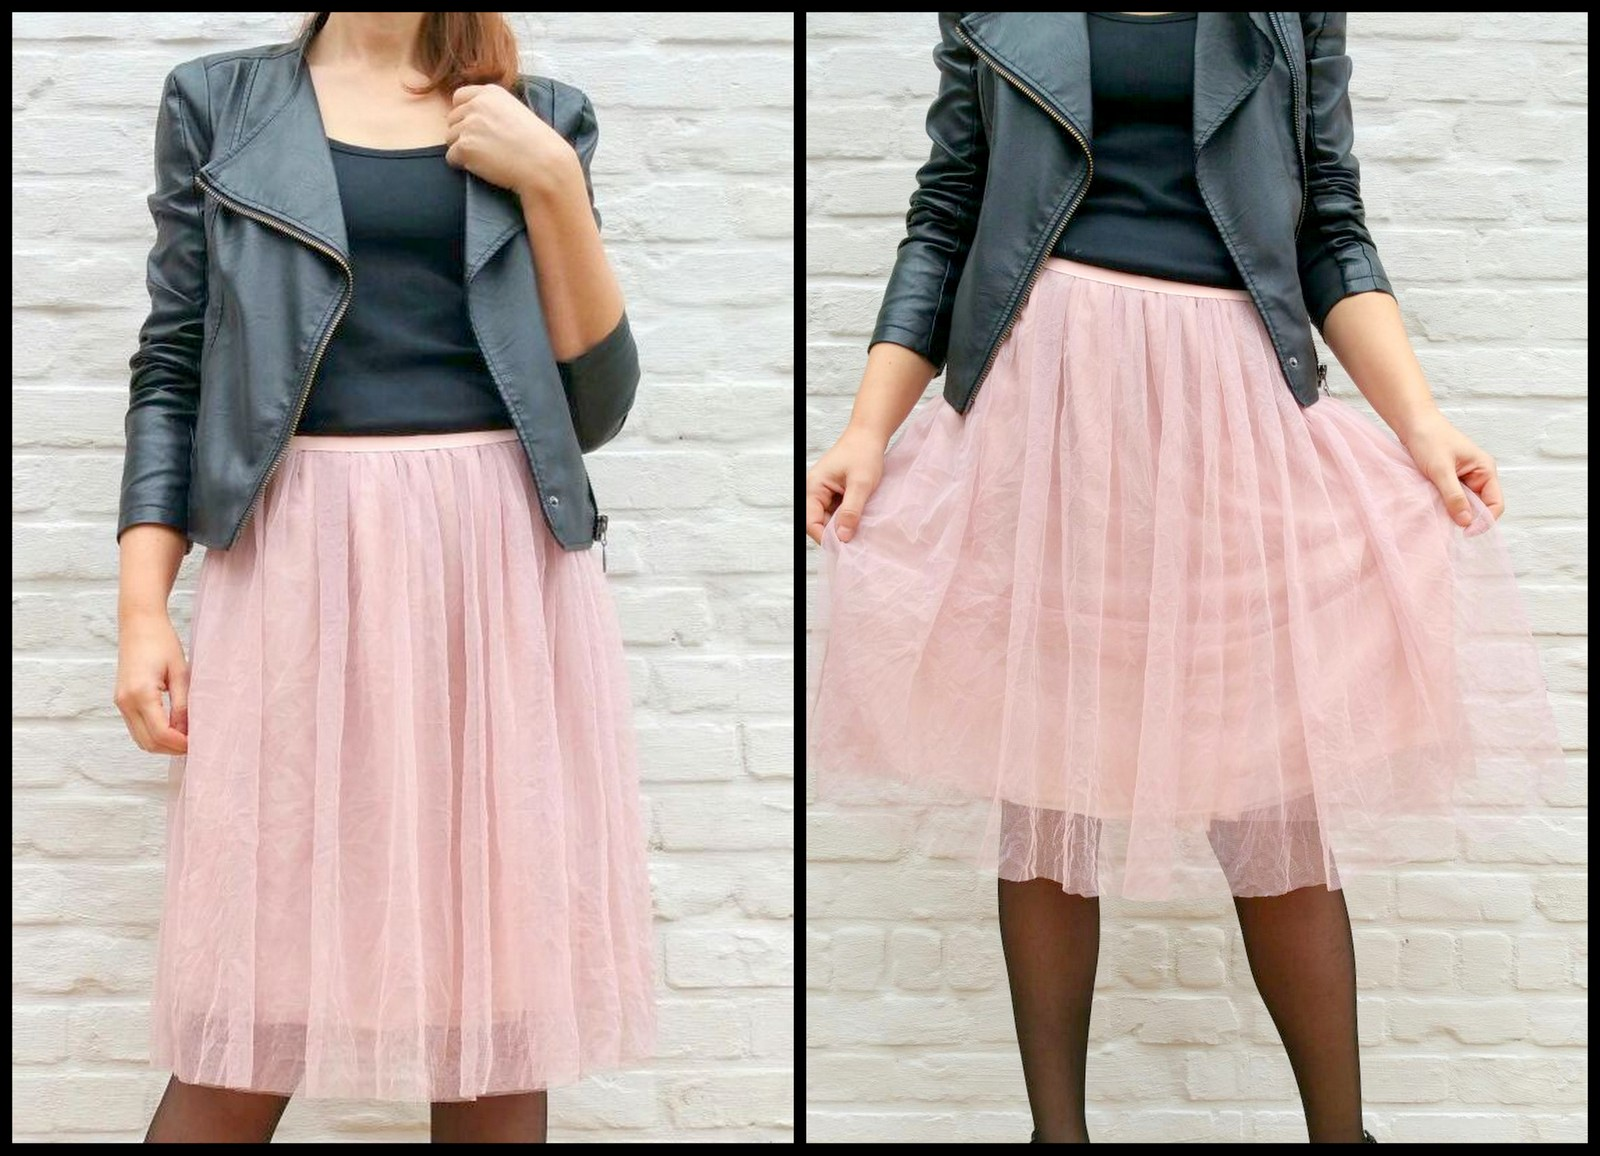 tule/chiffon skirt (collage)